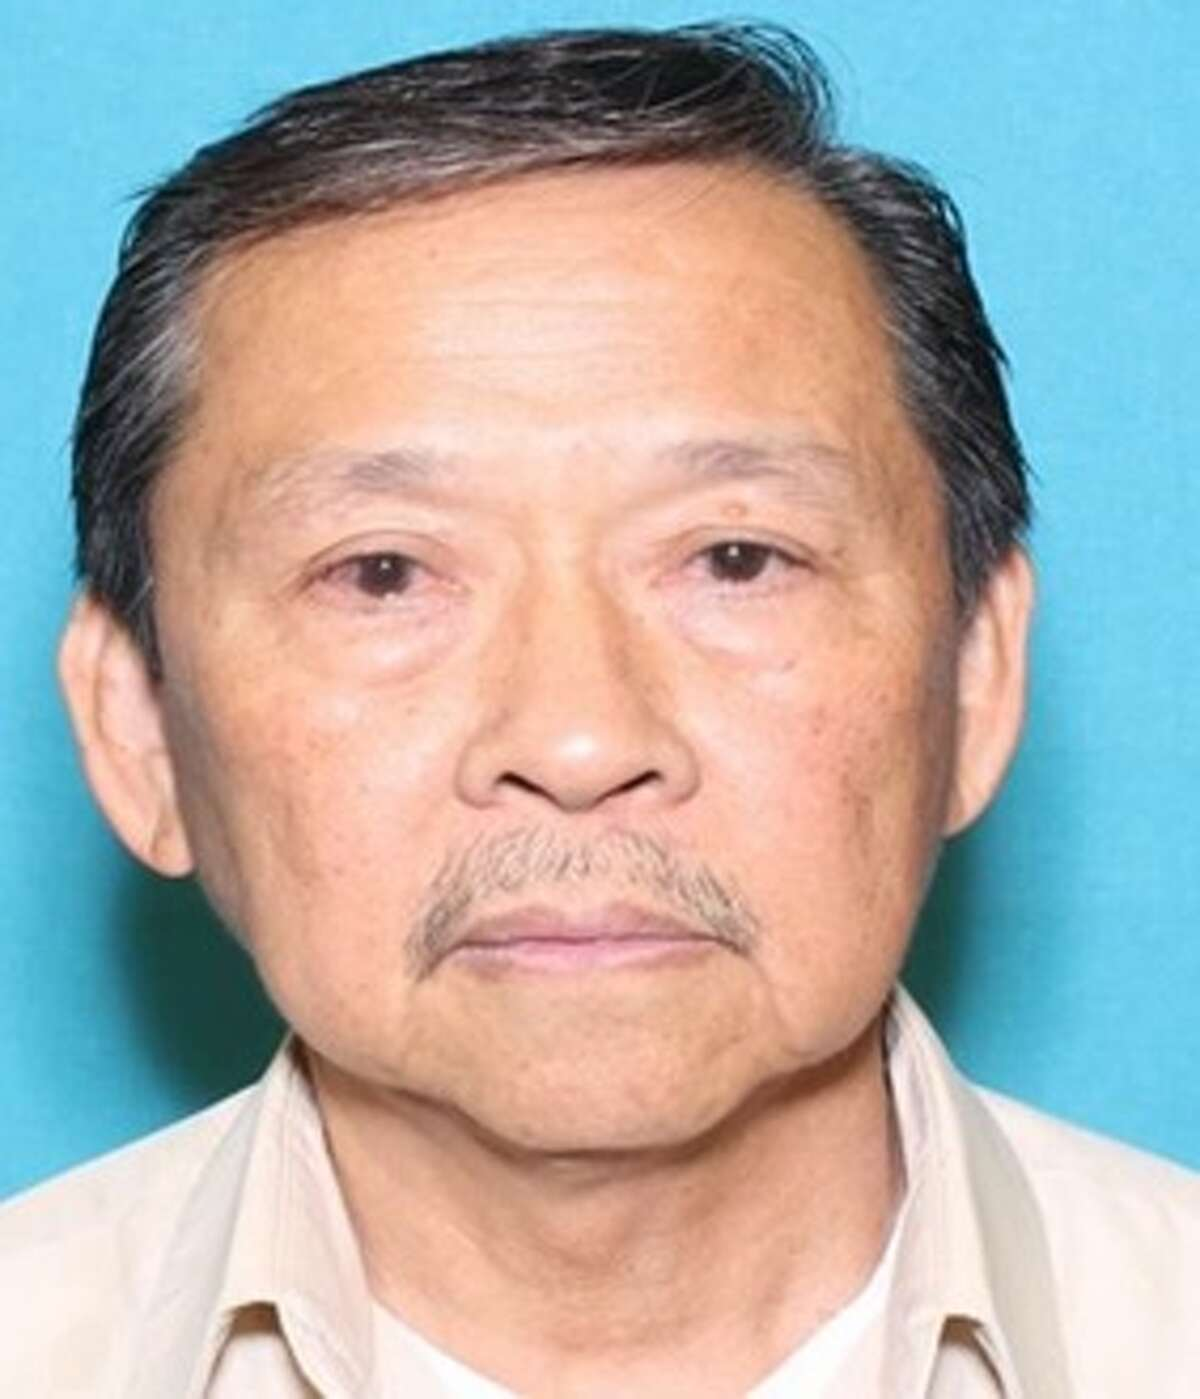 Tai Dac Vuong, 66, of Houston, was arrested Wednesday, Nov. 2, 2016, and charged with gambling promotion, a Class A misdemeanor, when deputies closed the New Zone Game Room in Sugar Land. (Fort Bend County Sheriff's Office)